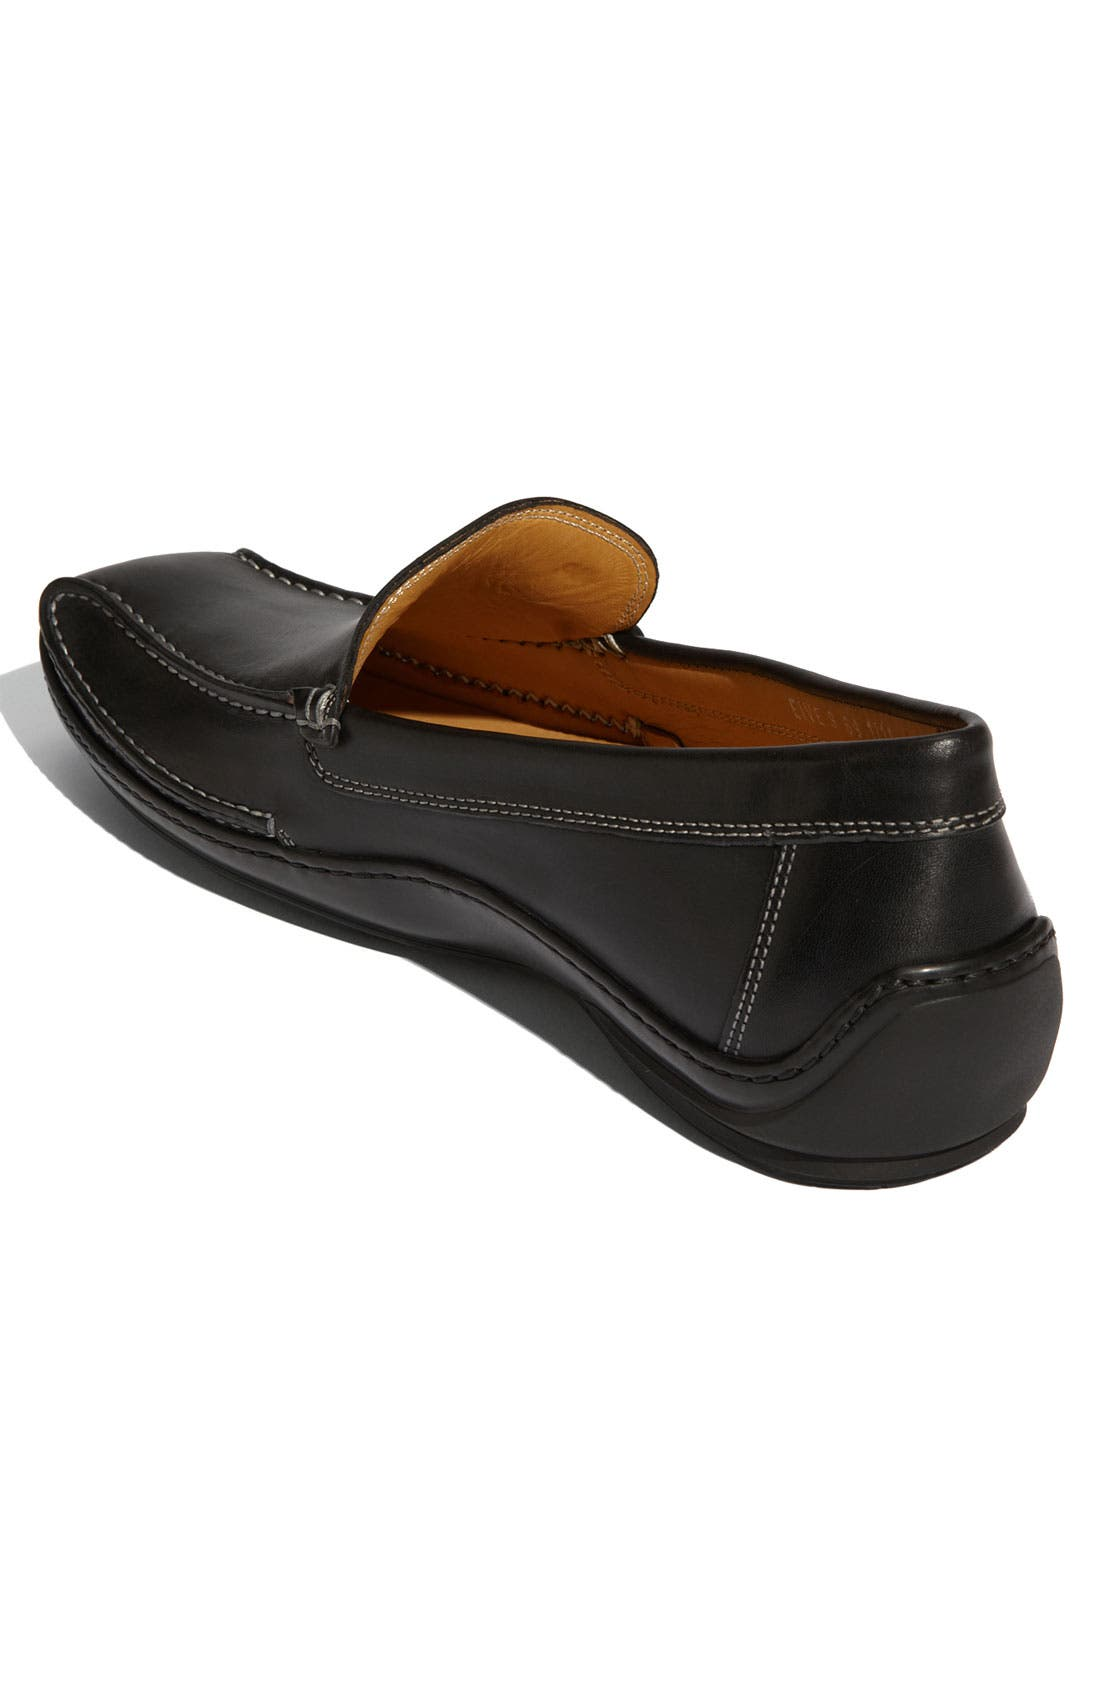 Alternate Image 2  - Donald J Pliner 'Eive' Slip-On